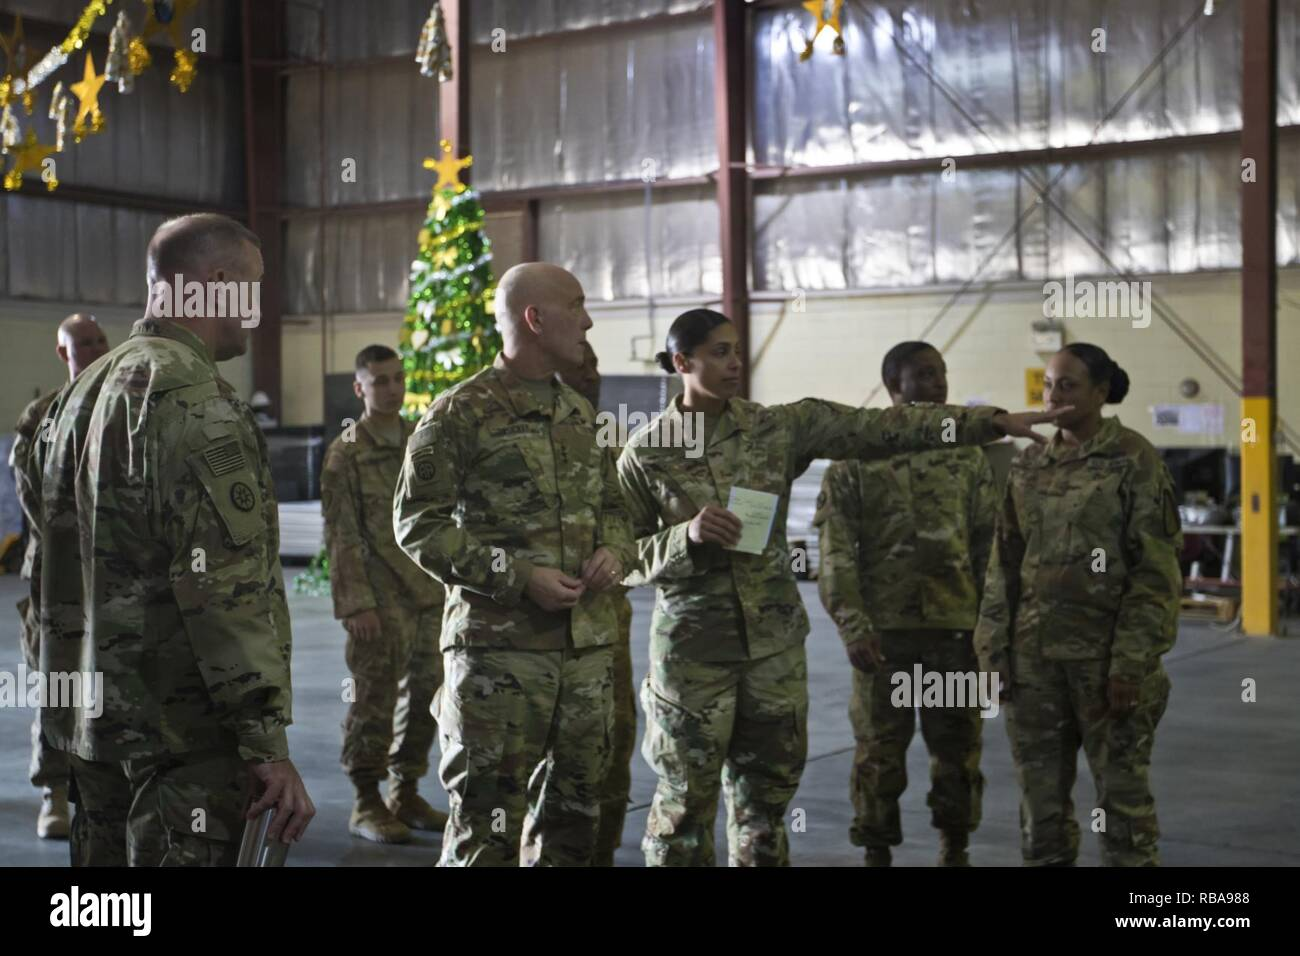 U.S. Army Reserve Commanding General, Lt. Gen. Charles D. Luckey, tours the Iraq Train and Equipment Fund (ITEF) warehouse at Camp Arifjan, Kuwait, Jan. 4, 2017. - Stock Image